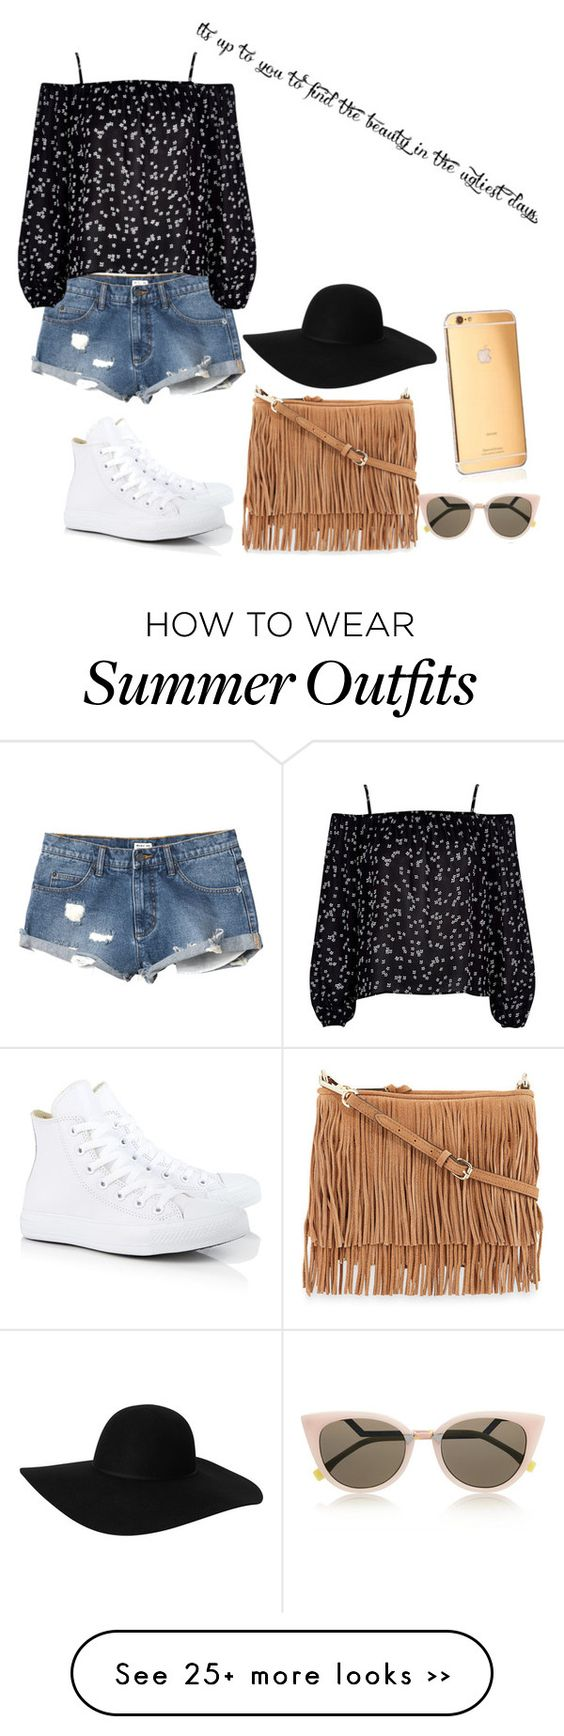 """""""Summer outfit"""" by musicislife166 on Polyvore"""